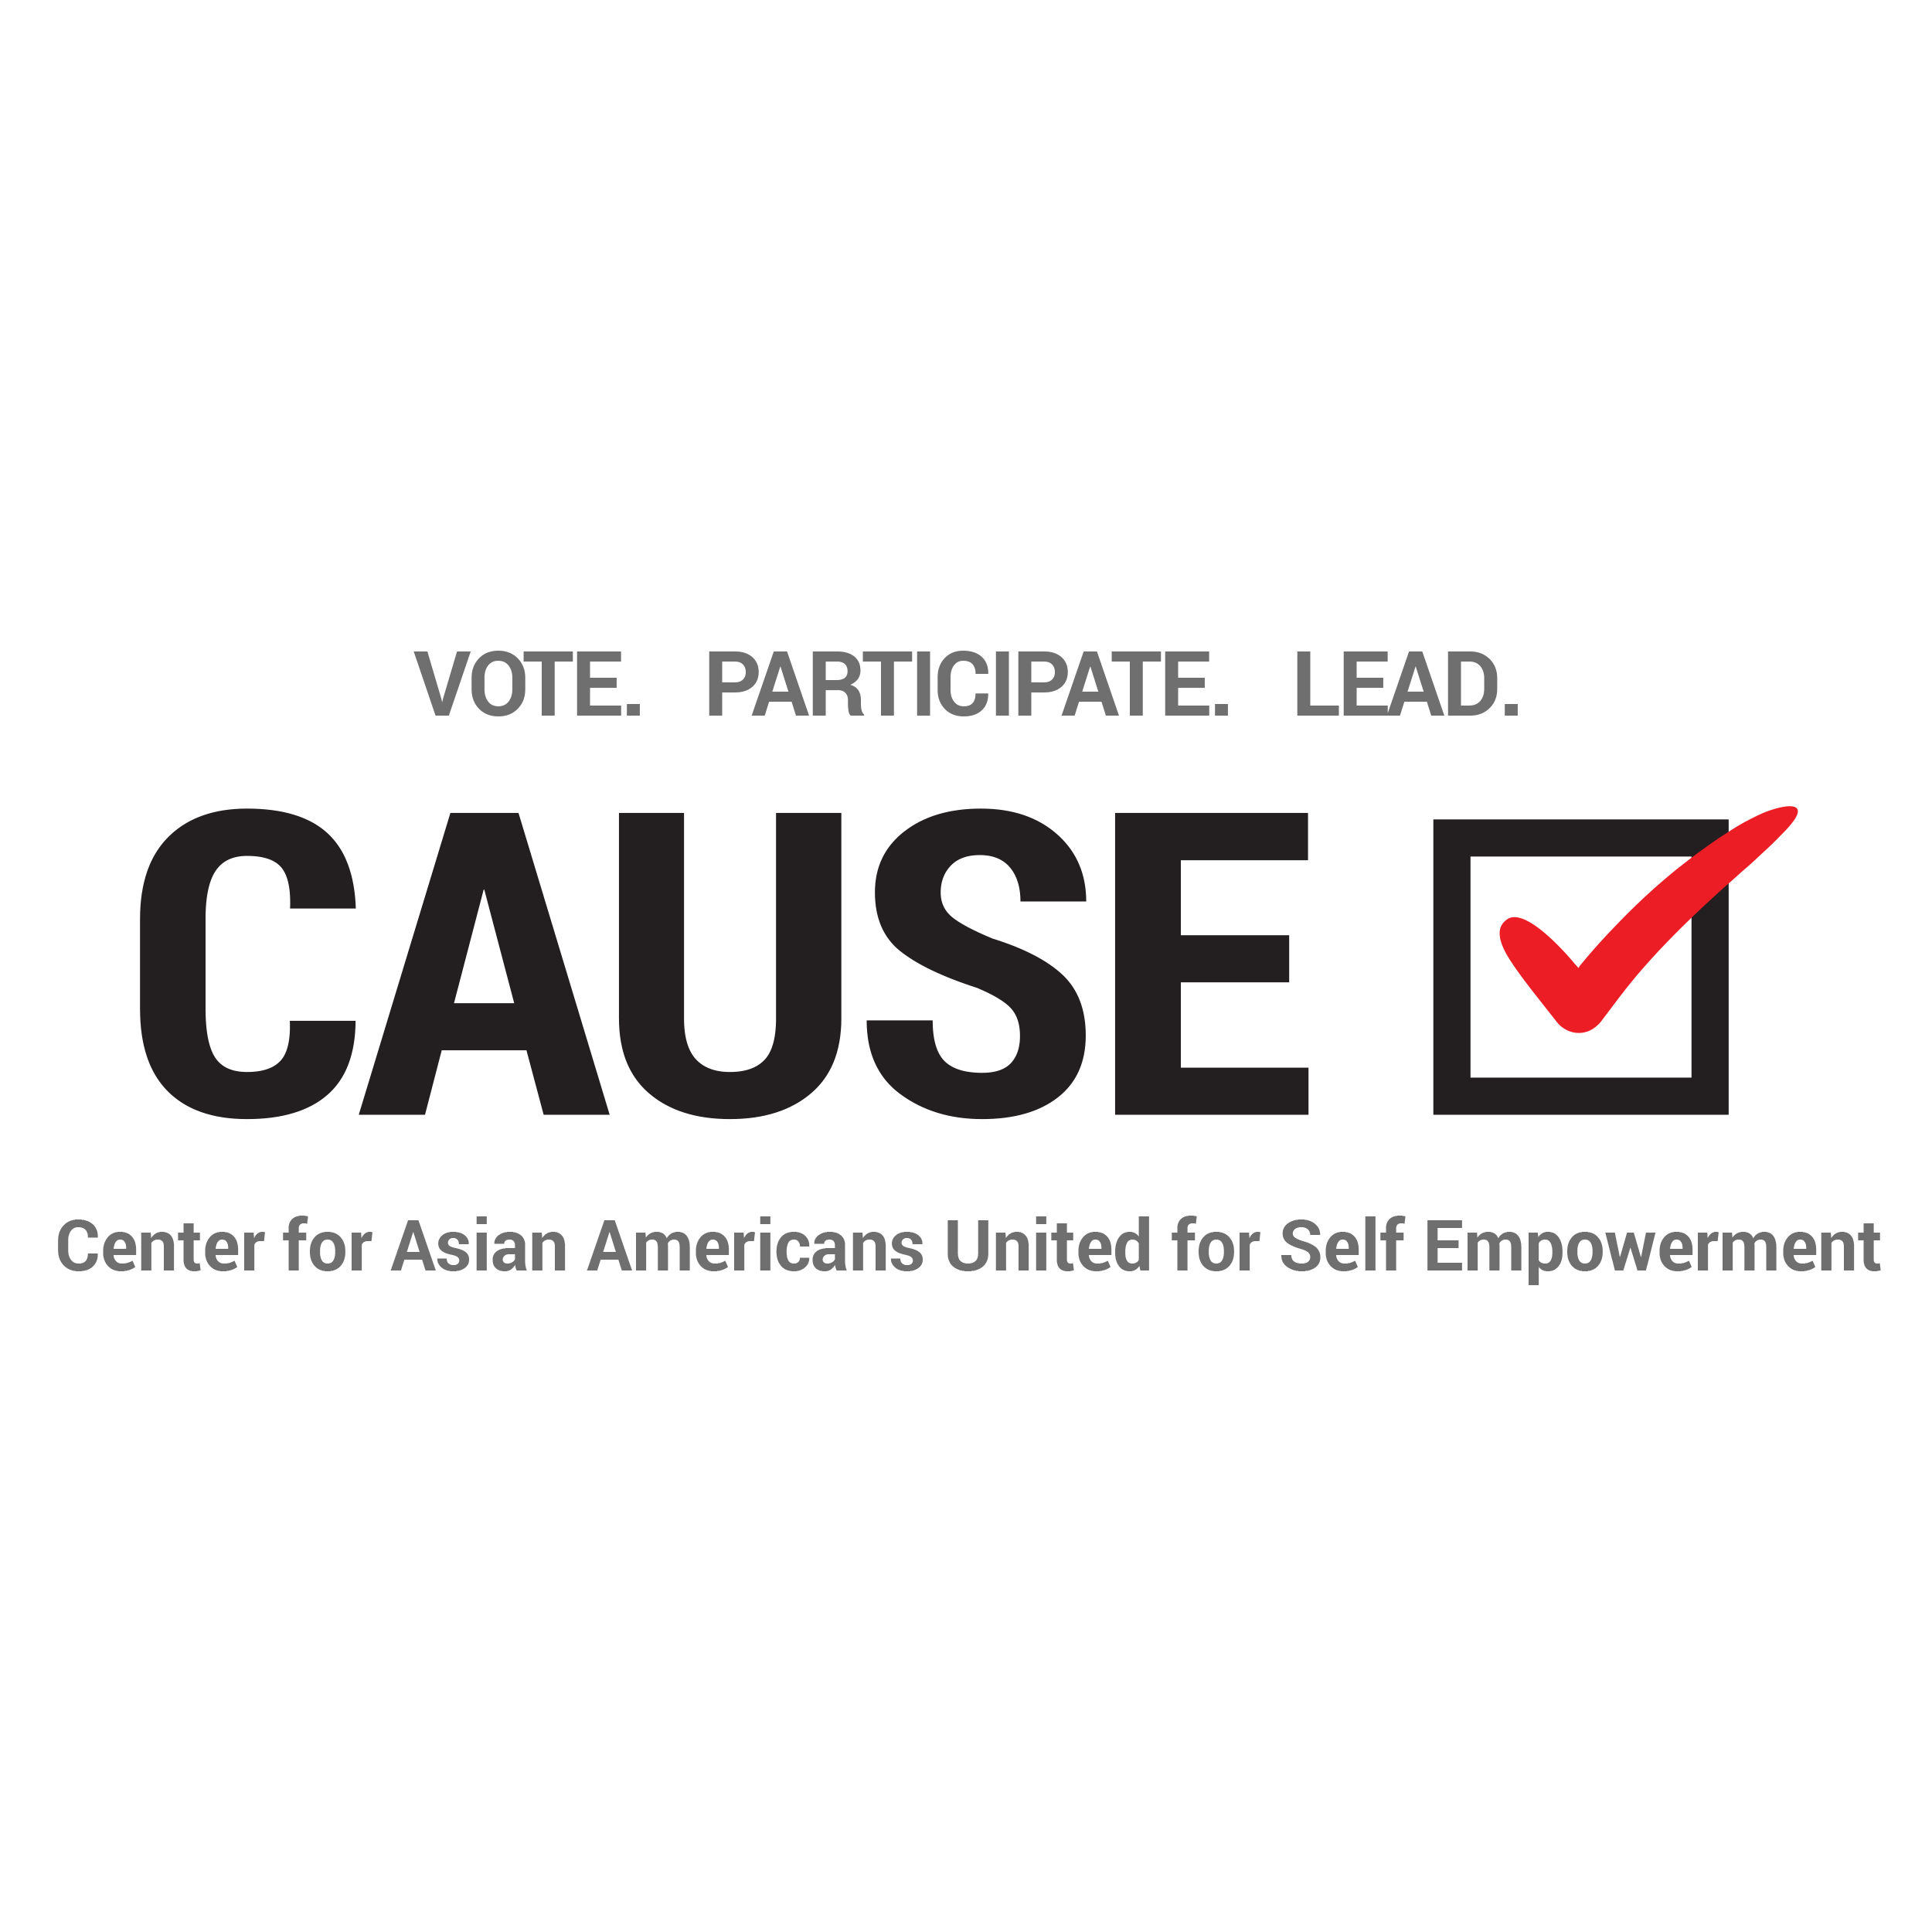 Center for Asian Americans United for Self Empowerment